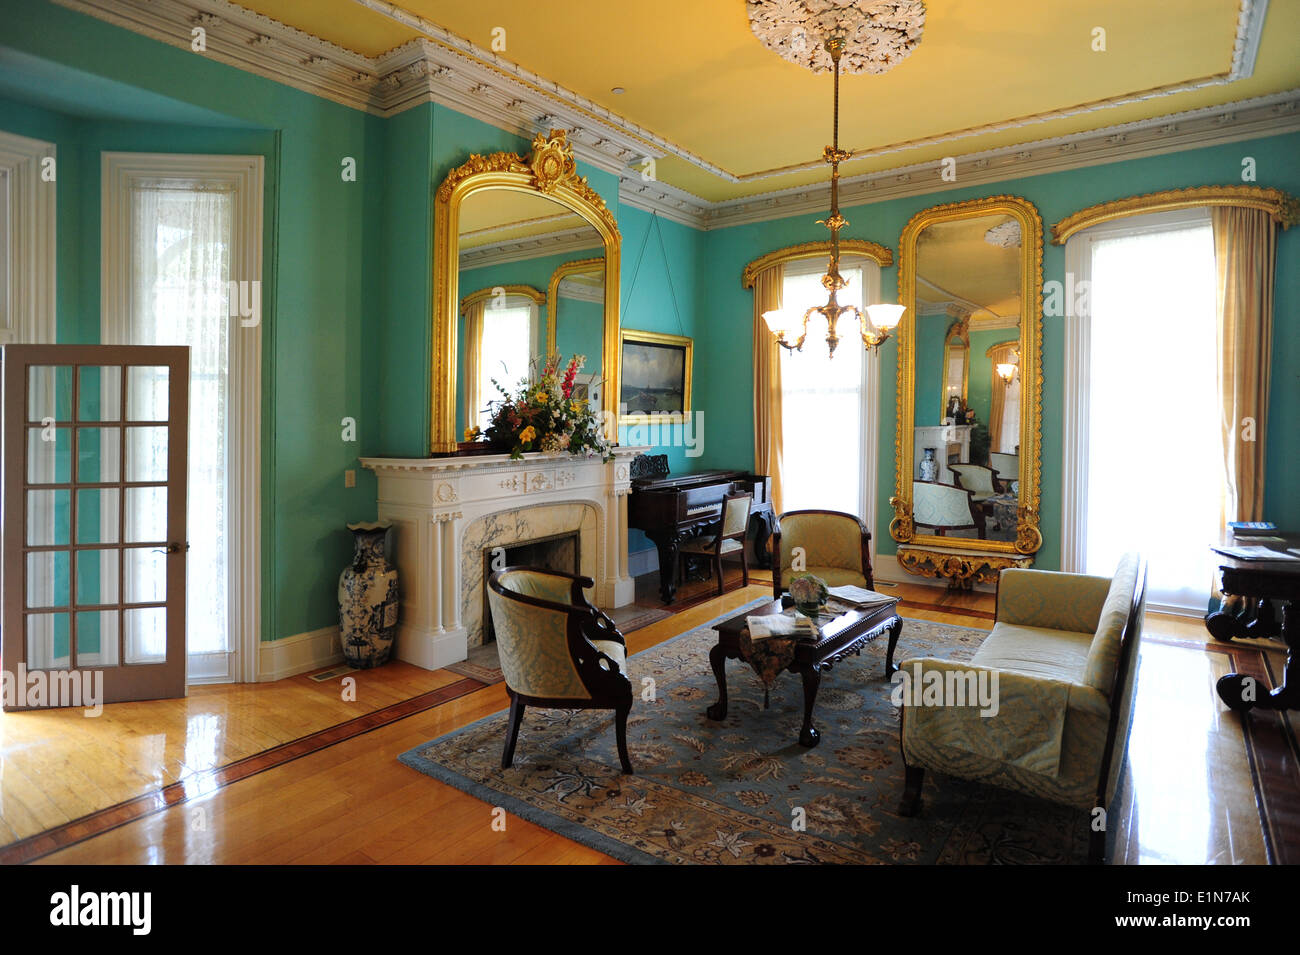 USA New Jersey NJ Cape May Southern Mansion B & B hotel old Victorian home now an inn - sitting room - Stock Image